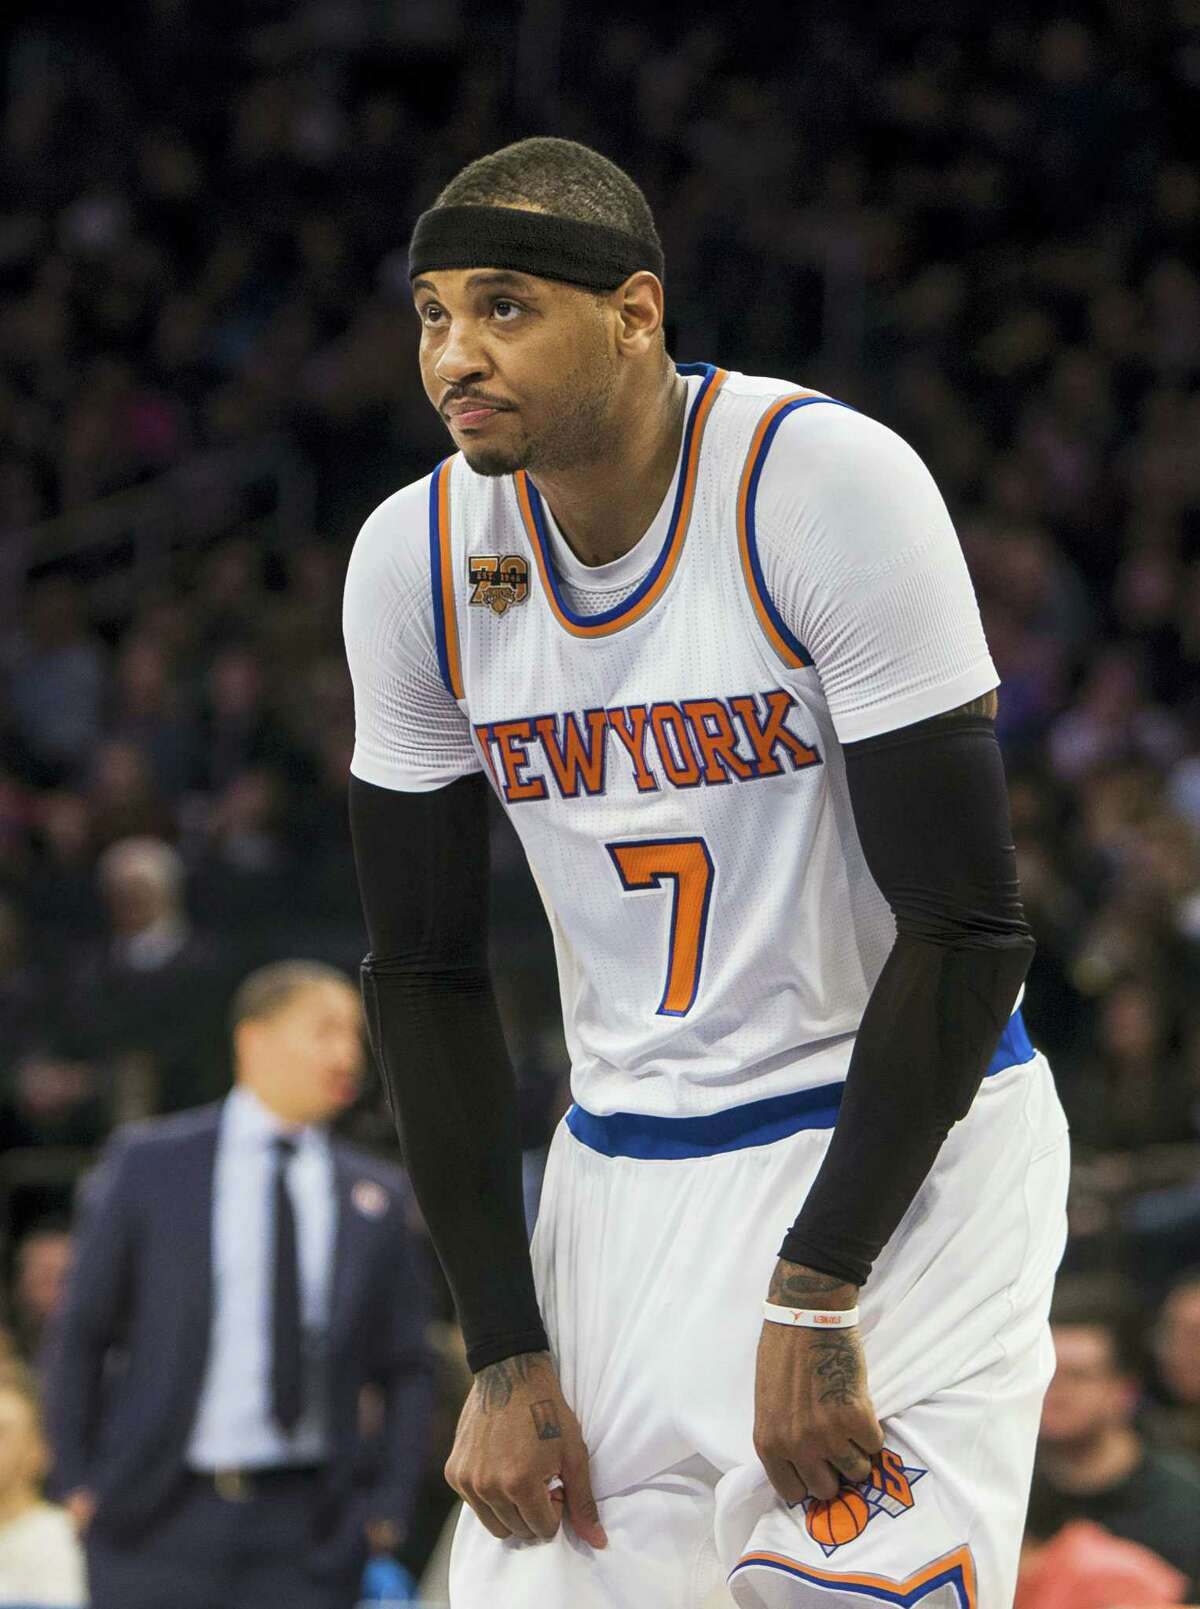 New York Knicks' Carmelo Anthony (7) reacts during the first half of an NBA basketball game against Cleveland Cavaliers on Feb. 4, 2017 in New York.